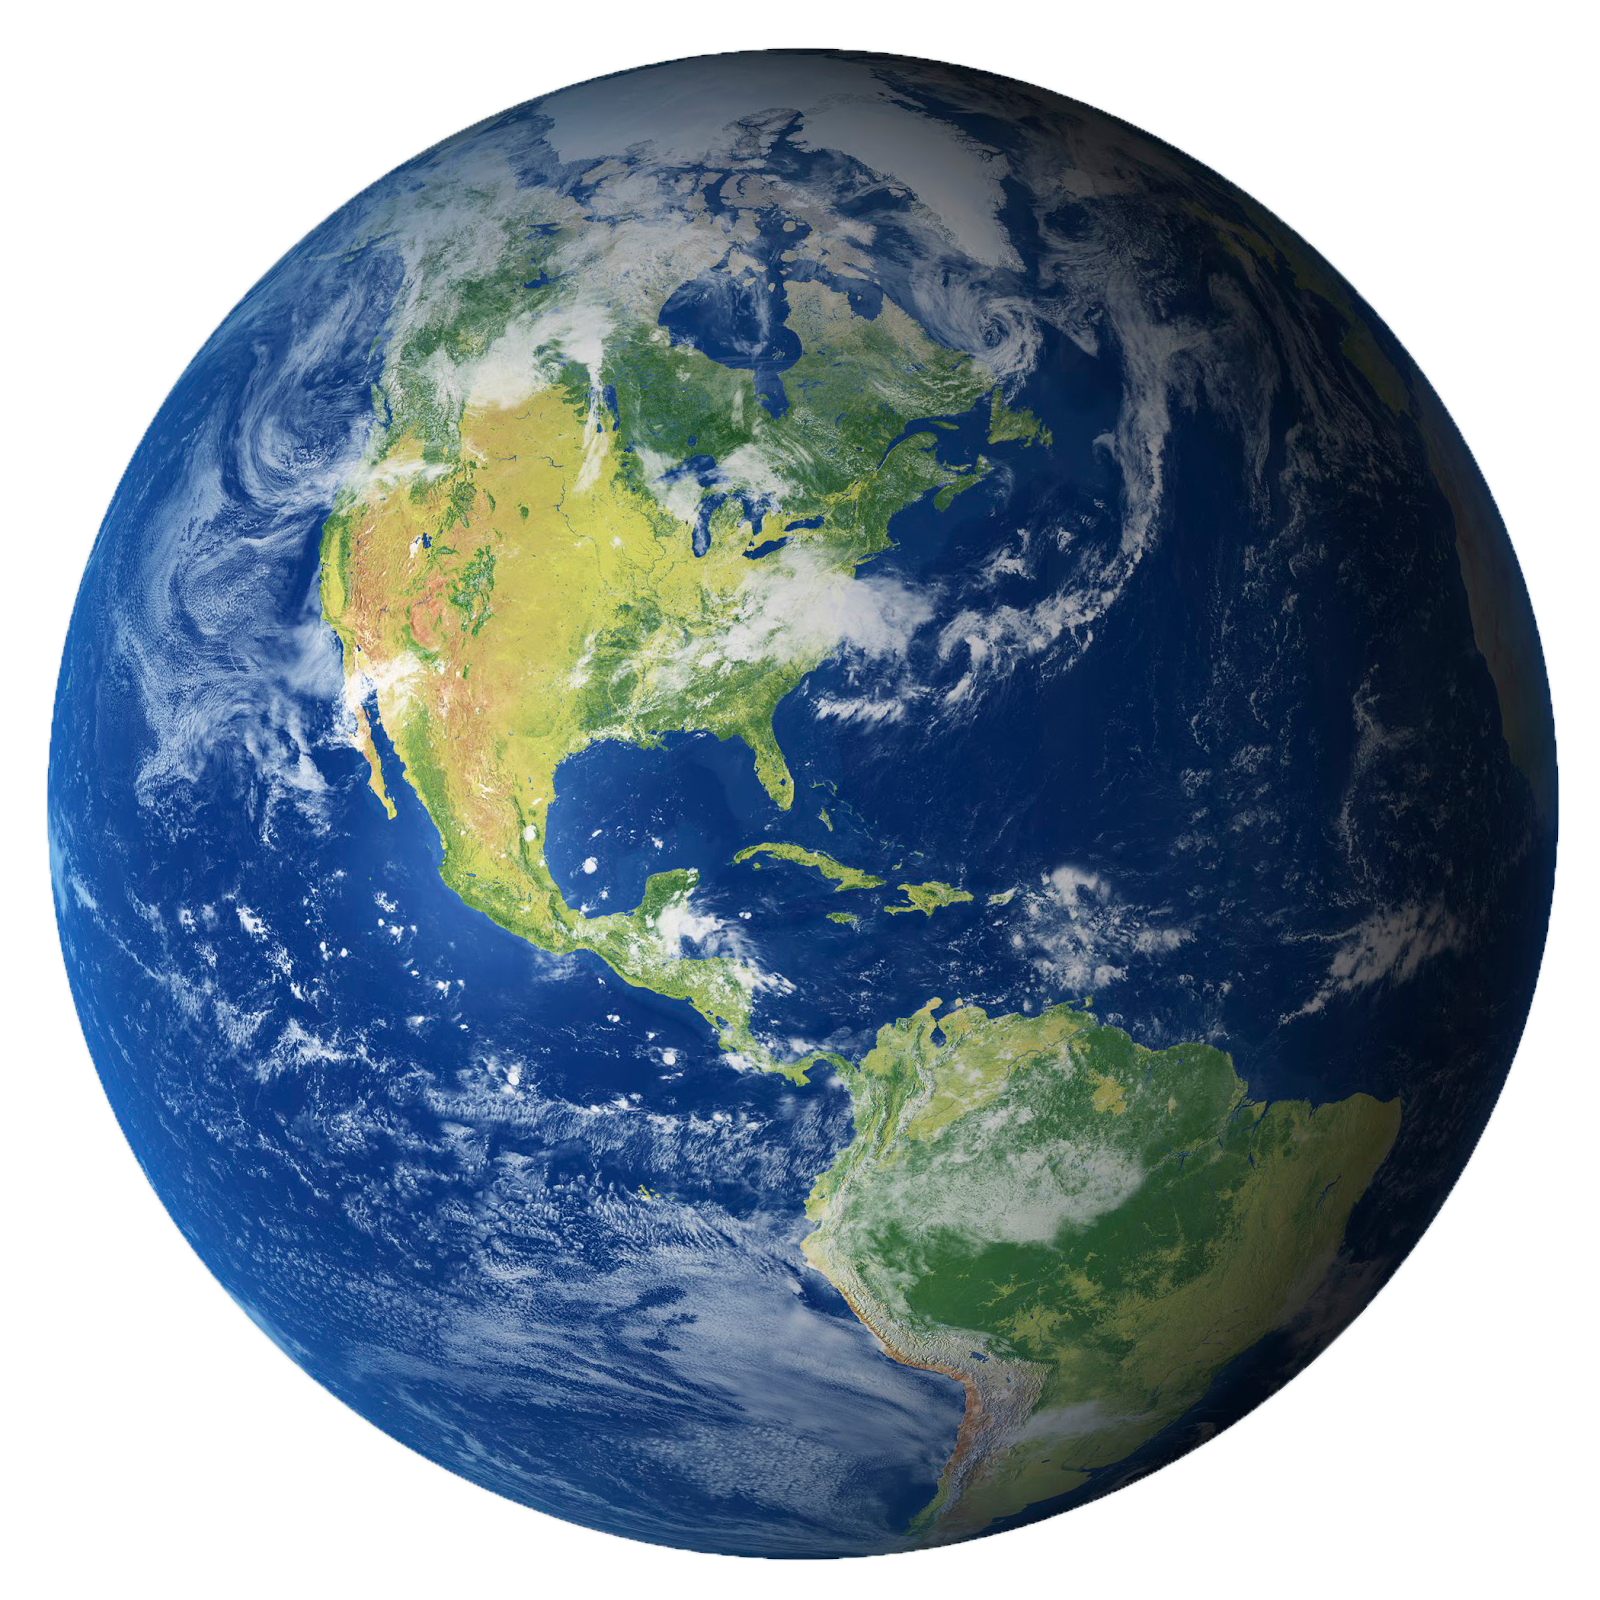 Planet Earth Png image #25612